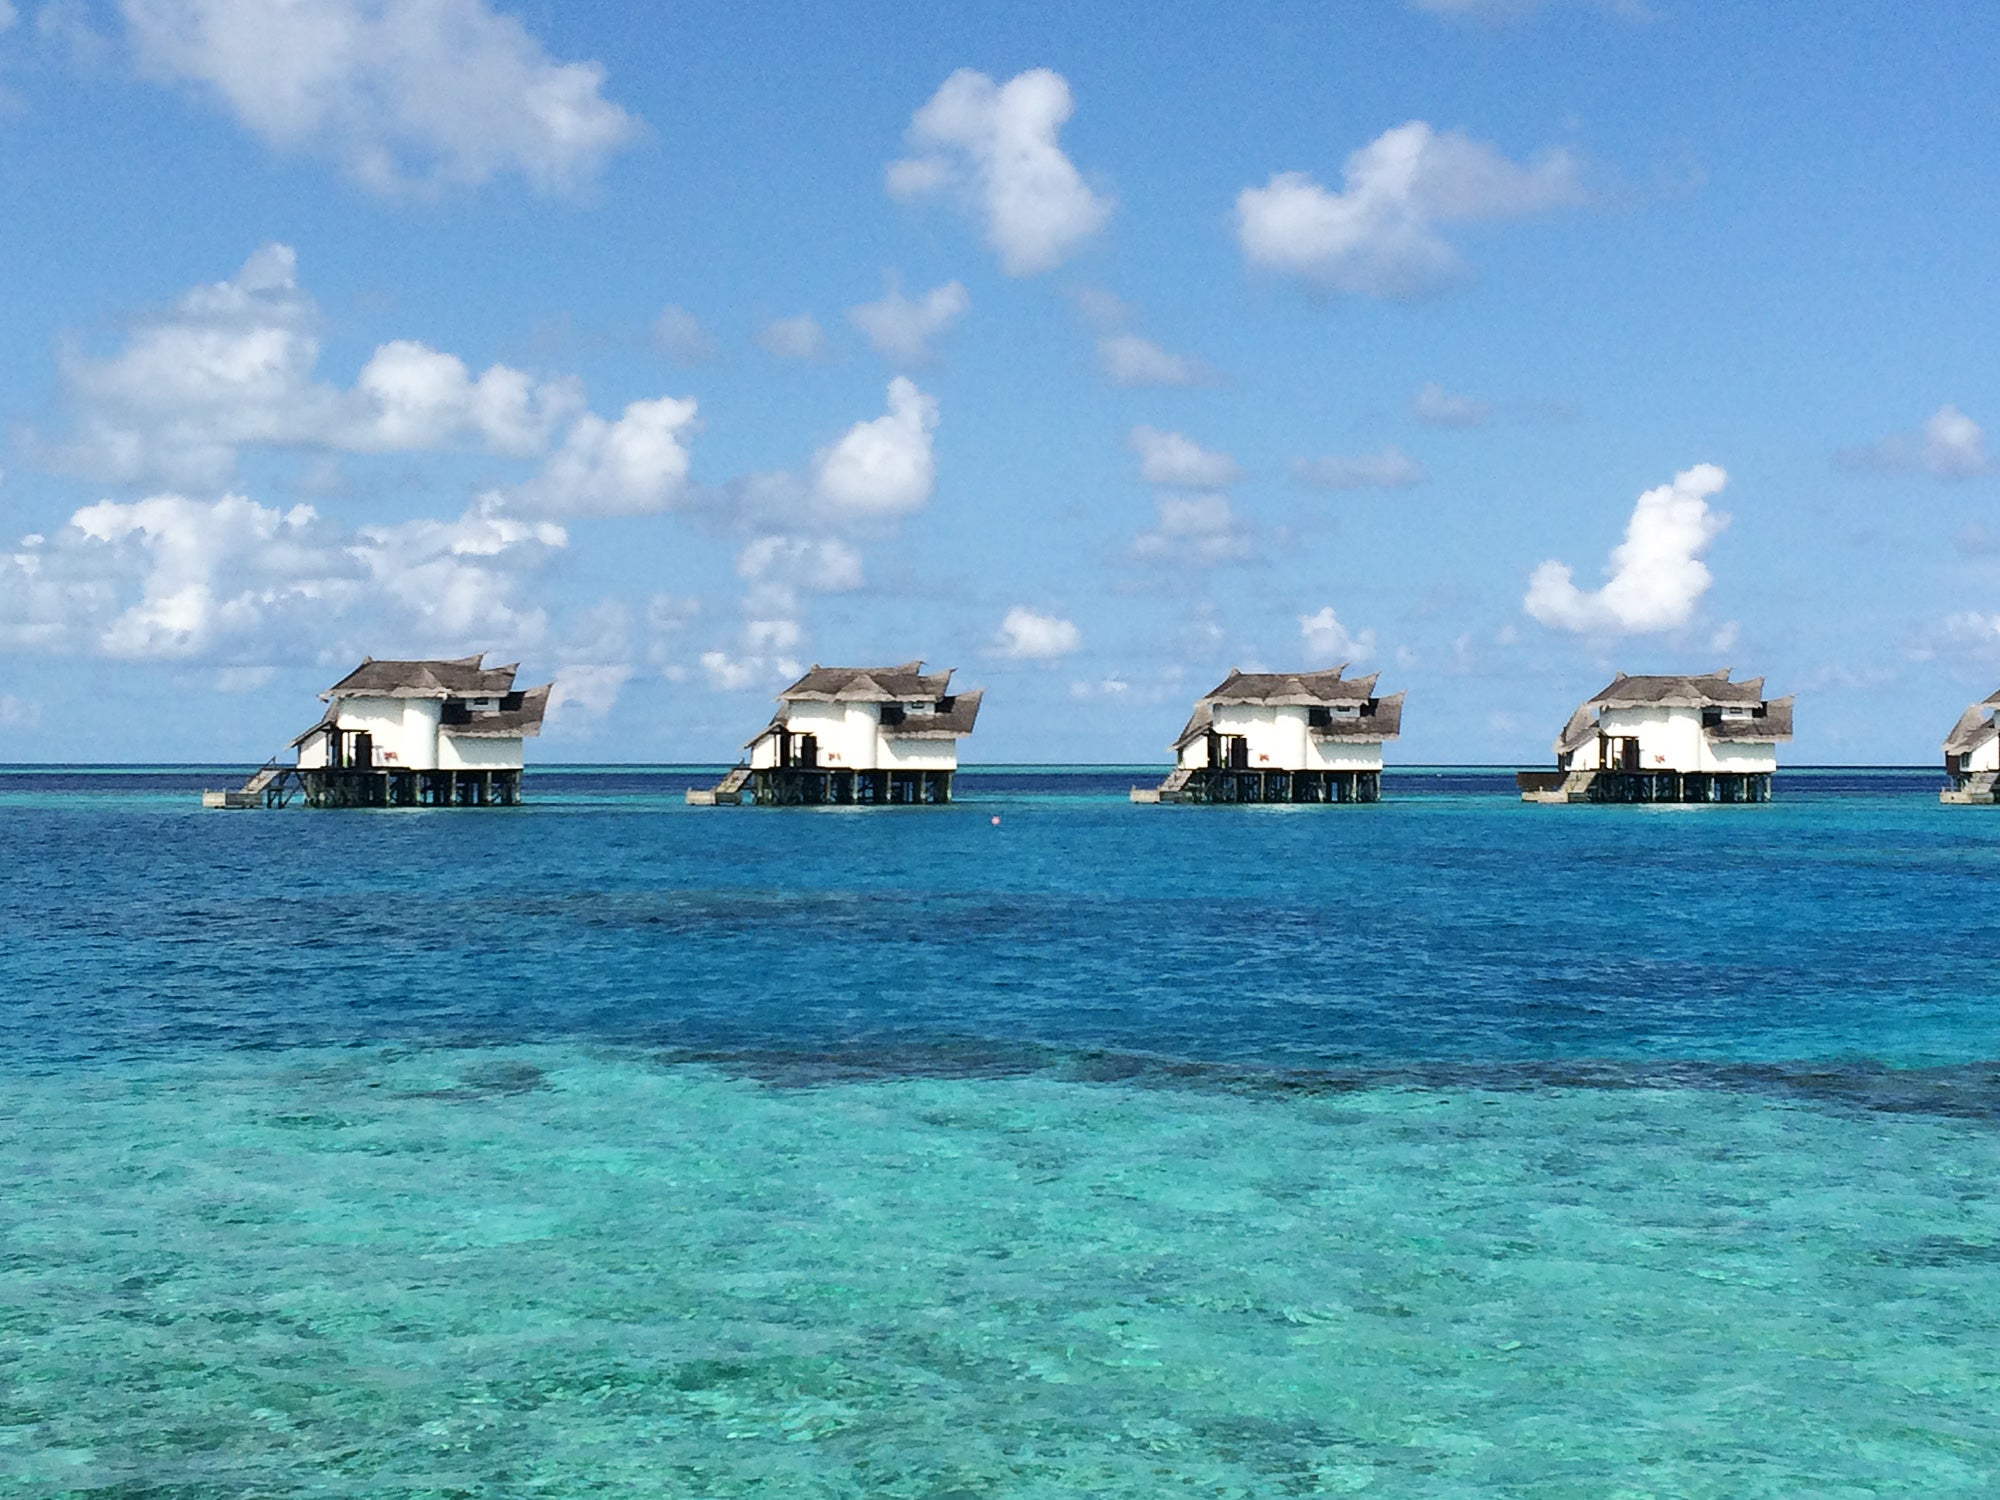 Eating Breakfast in the Maldives